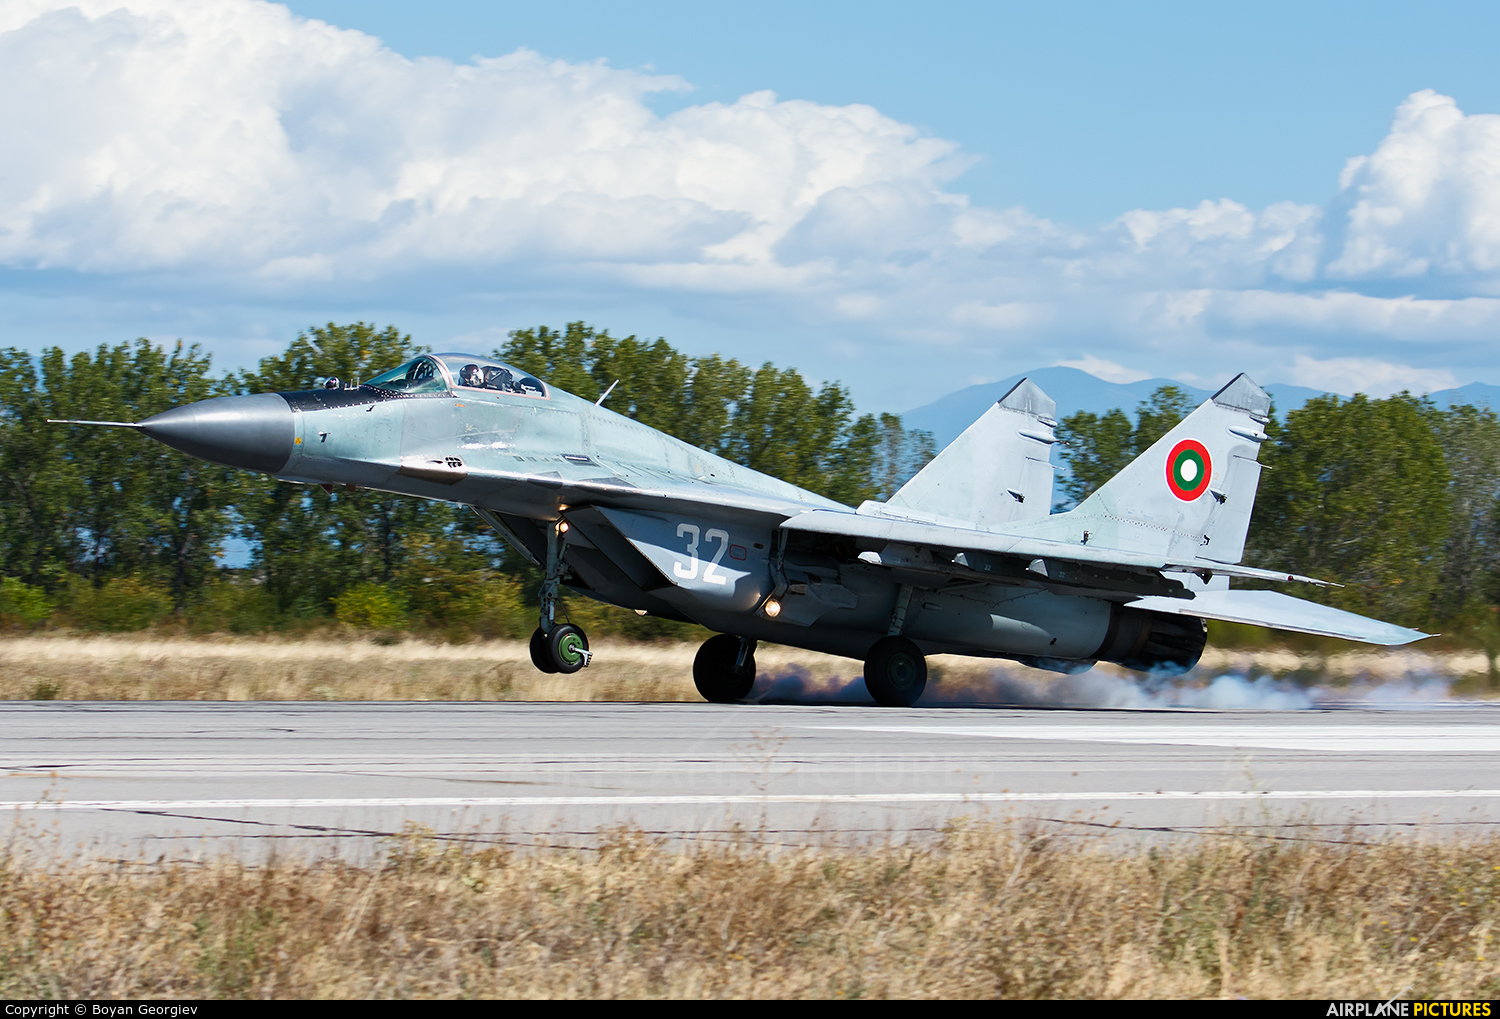 Bulgaria - Air Force 32 aircraft at Graf Ignatievo